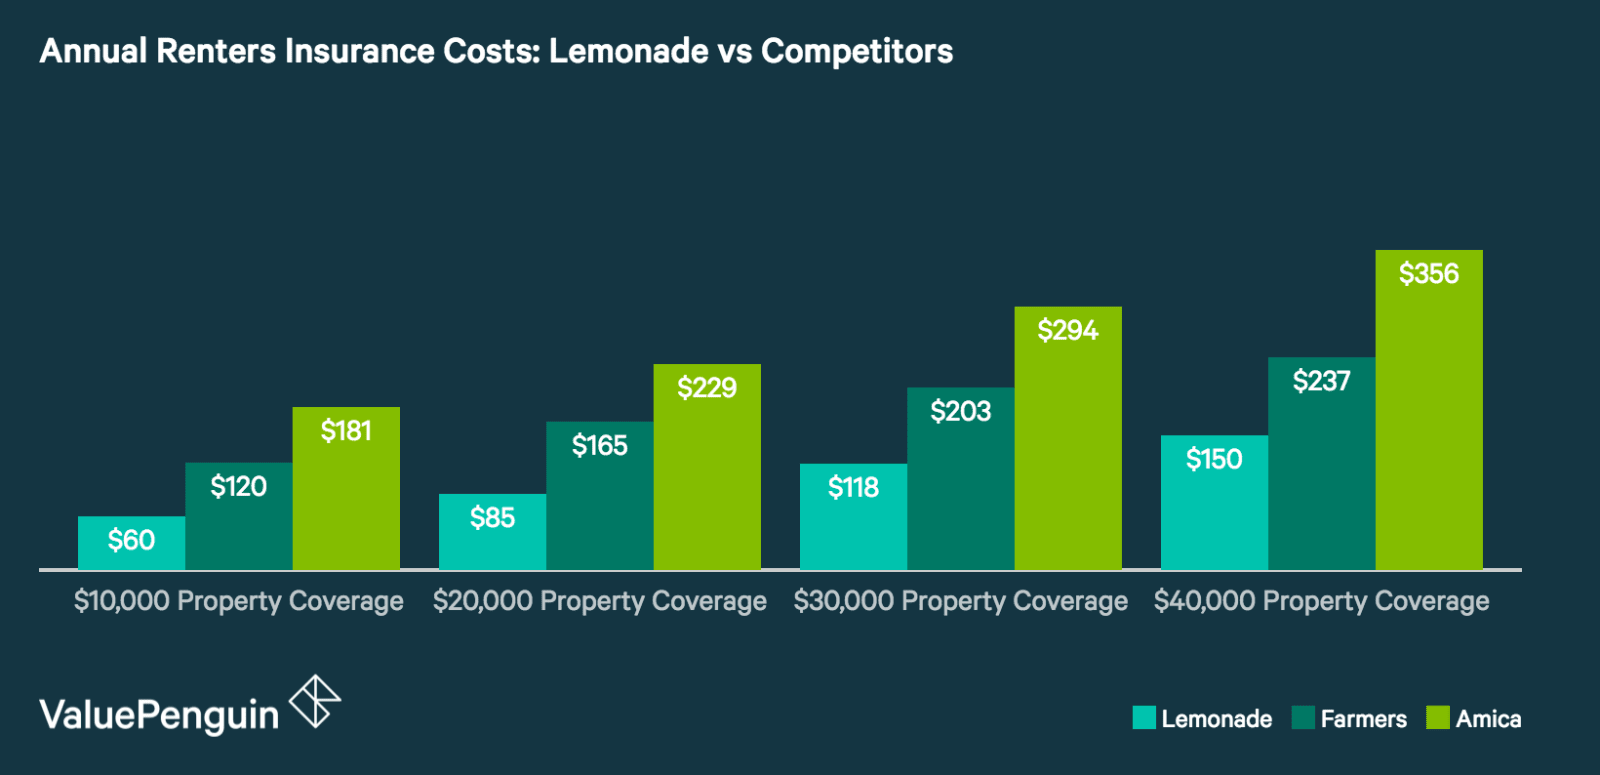 How Do Lemonade's Renters Insurance Quotes Compare to Other Insurers?